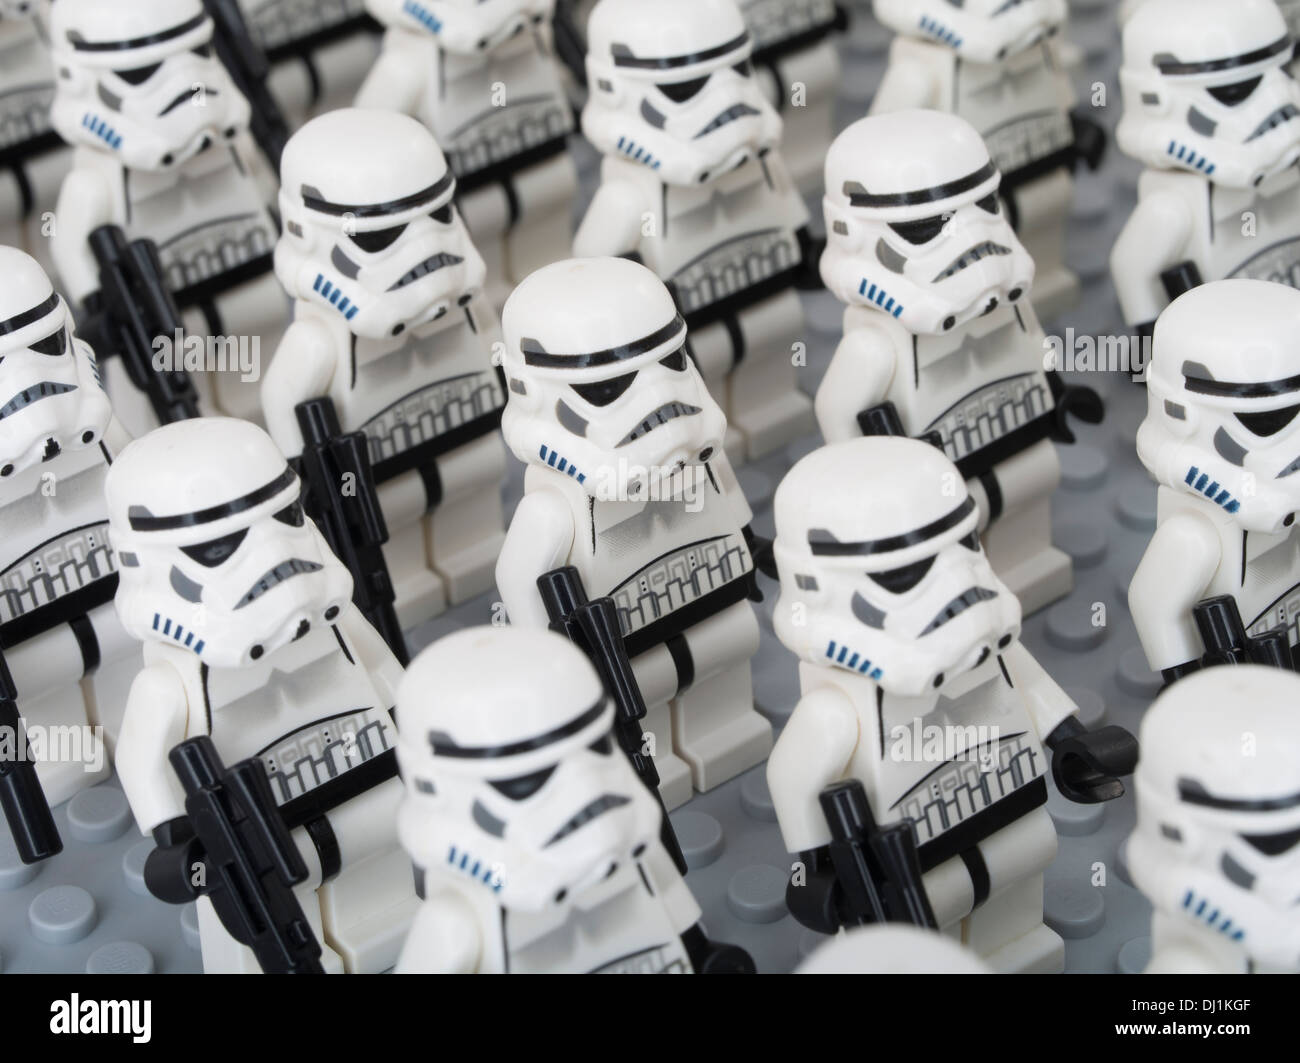 Lego Star Wars Minifigure Storm Troopers ( Clone Soldiers